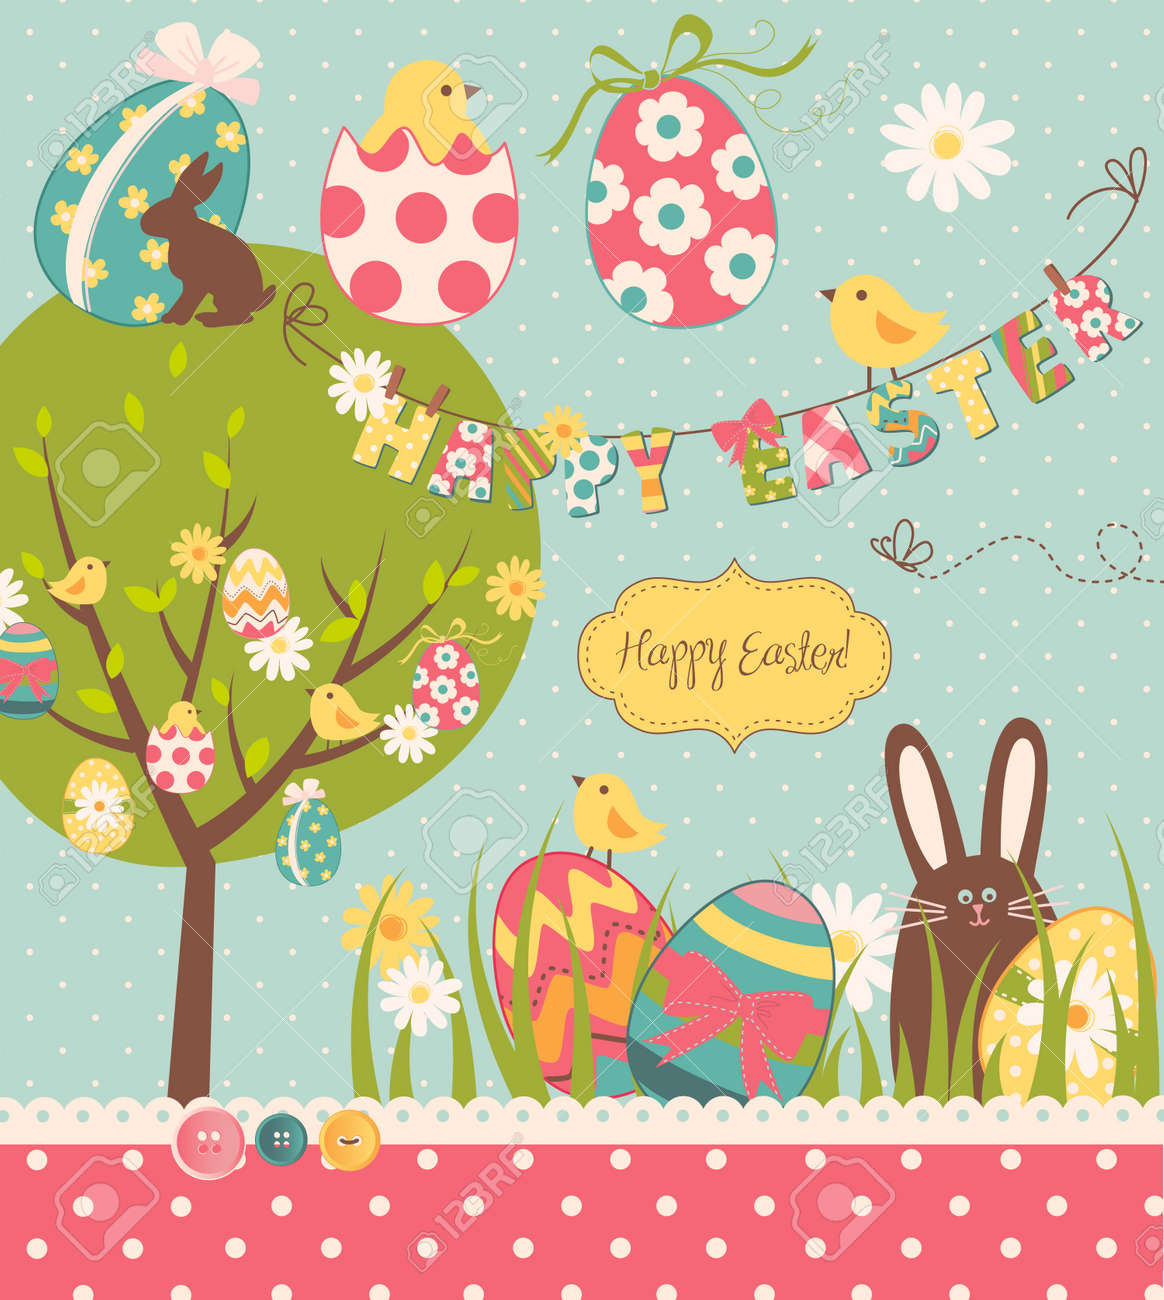 Easter Extravaganza. Big Easter set with cute chocolate rabbit, colourful eggs, chicks, Easter tree and a Clothesline with letters on it. Ideal for scrapbooking Stock Vector - 13346961